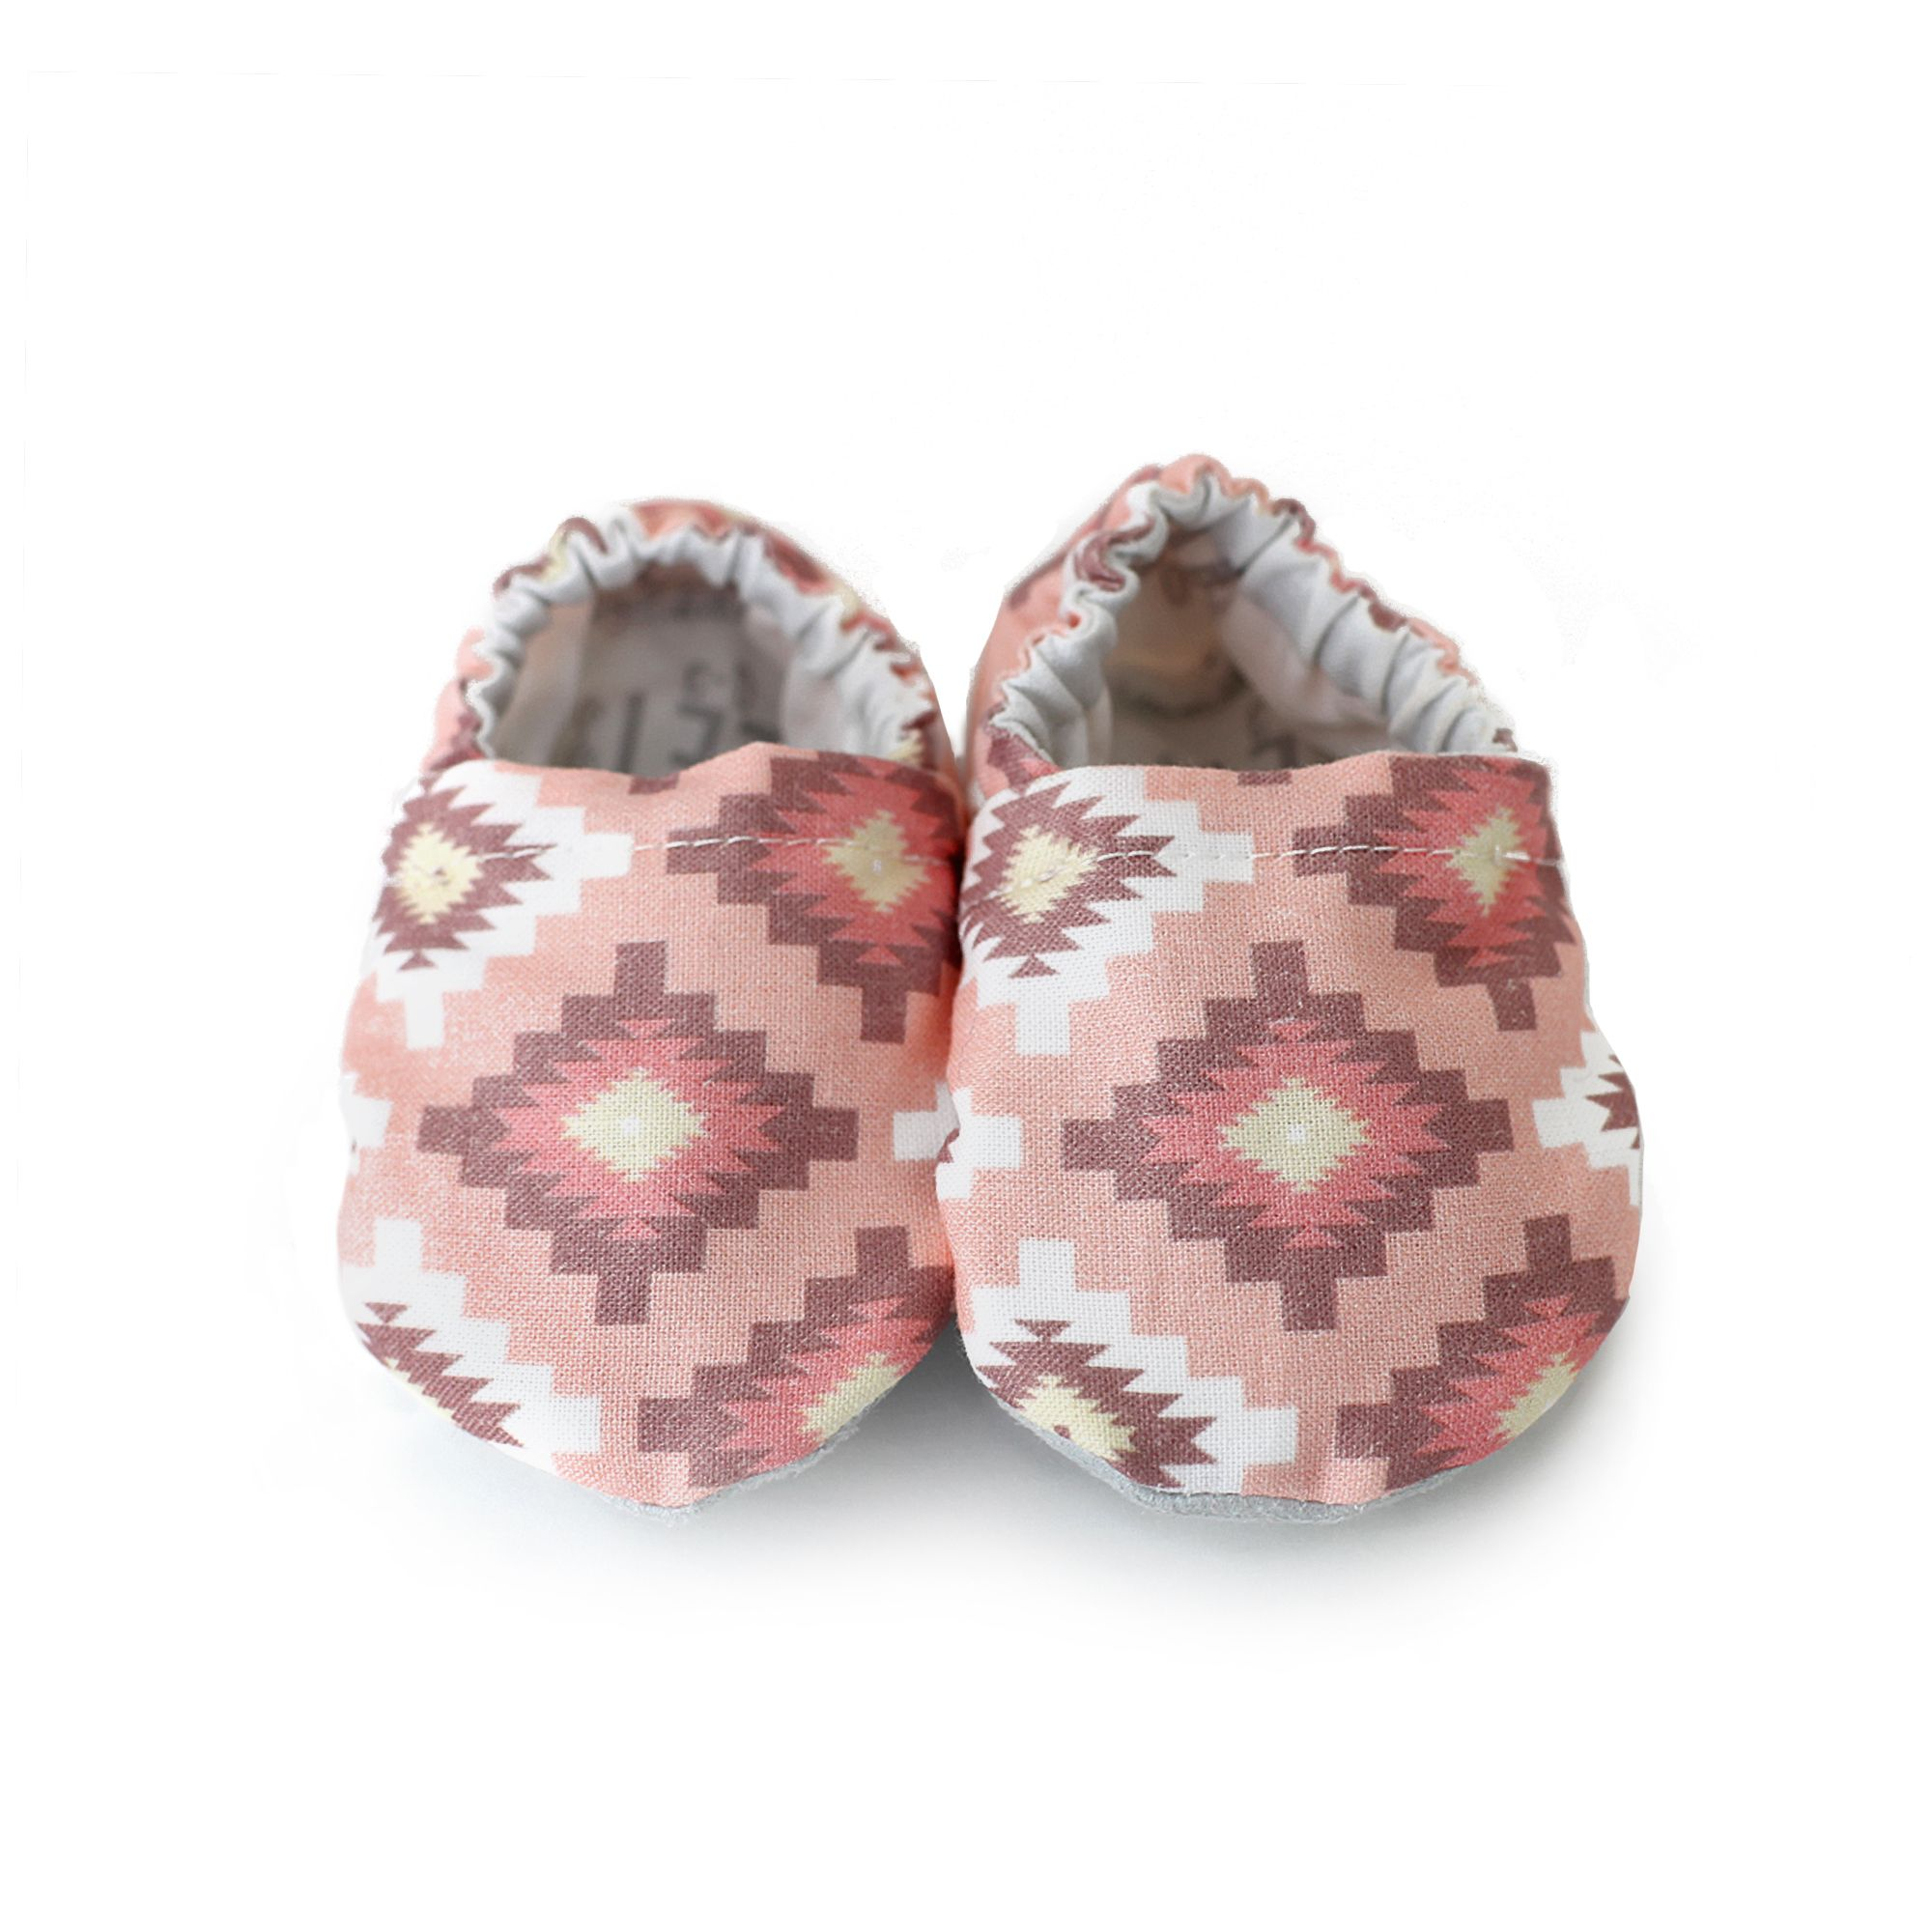 CLAMFEET soft soled baby shoes feature a custom designed shoe